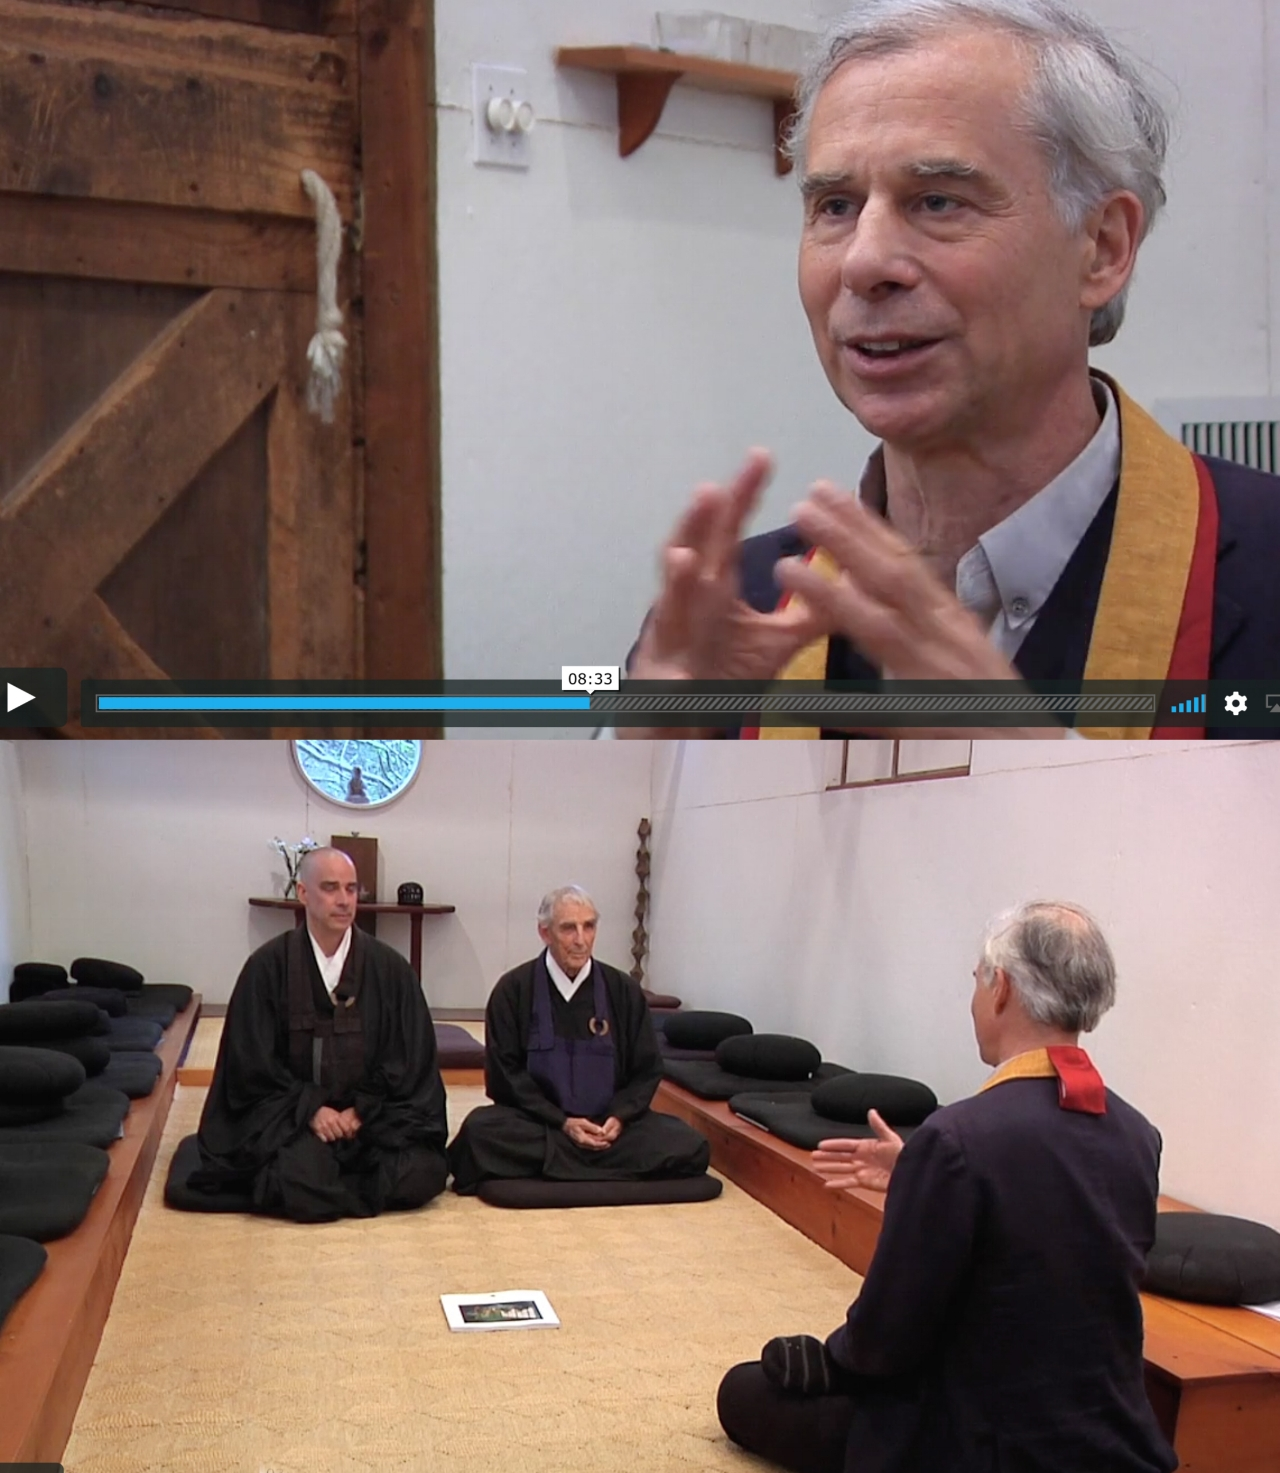 link here : In 1982, as a young Zen student of Bernie Glassman, Peter Cunningham joined Bernie Glassman and his first successor, Peter Muryo Matthiessen, on a pilgrimage to pay respects to their dharma grandparents—some of the great living Zen masters of twentieth-century Japan. In this video exclusive, Cunningham, keeping it all in the dharma family, reunites with Matthiessen and his dharma son, Michel Engu Dobbs, at the zendo on Matthiessen's property in Sagaponack, Long Island. The three discuss their lineage, which combines elements of both Soto and Rinzai Zen, and the nature of dharma transmission within it. -from Tricycle Magazine